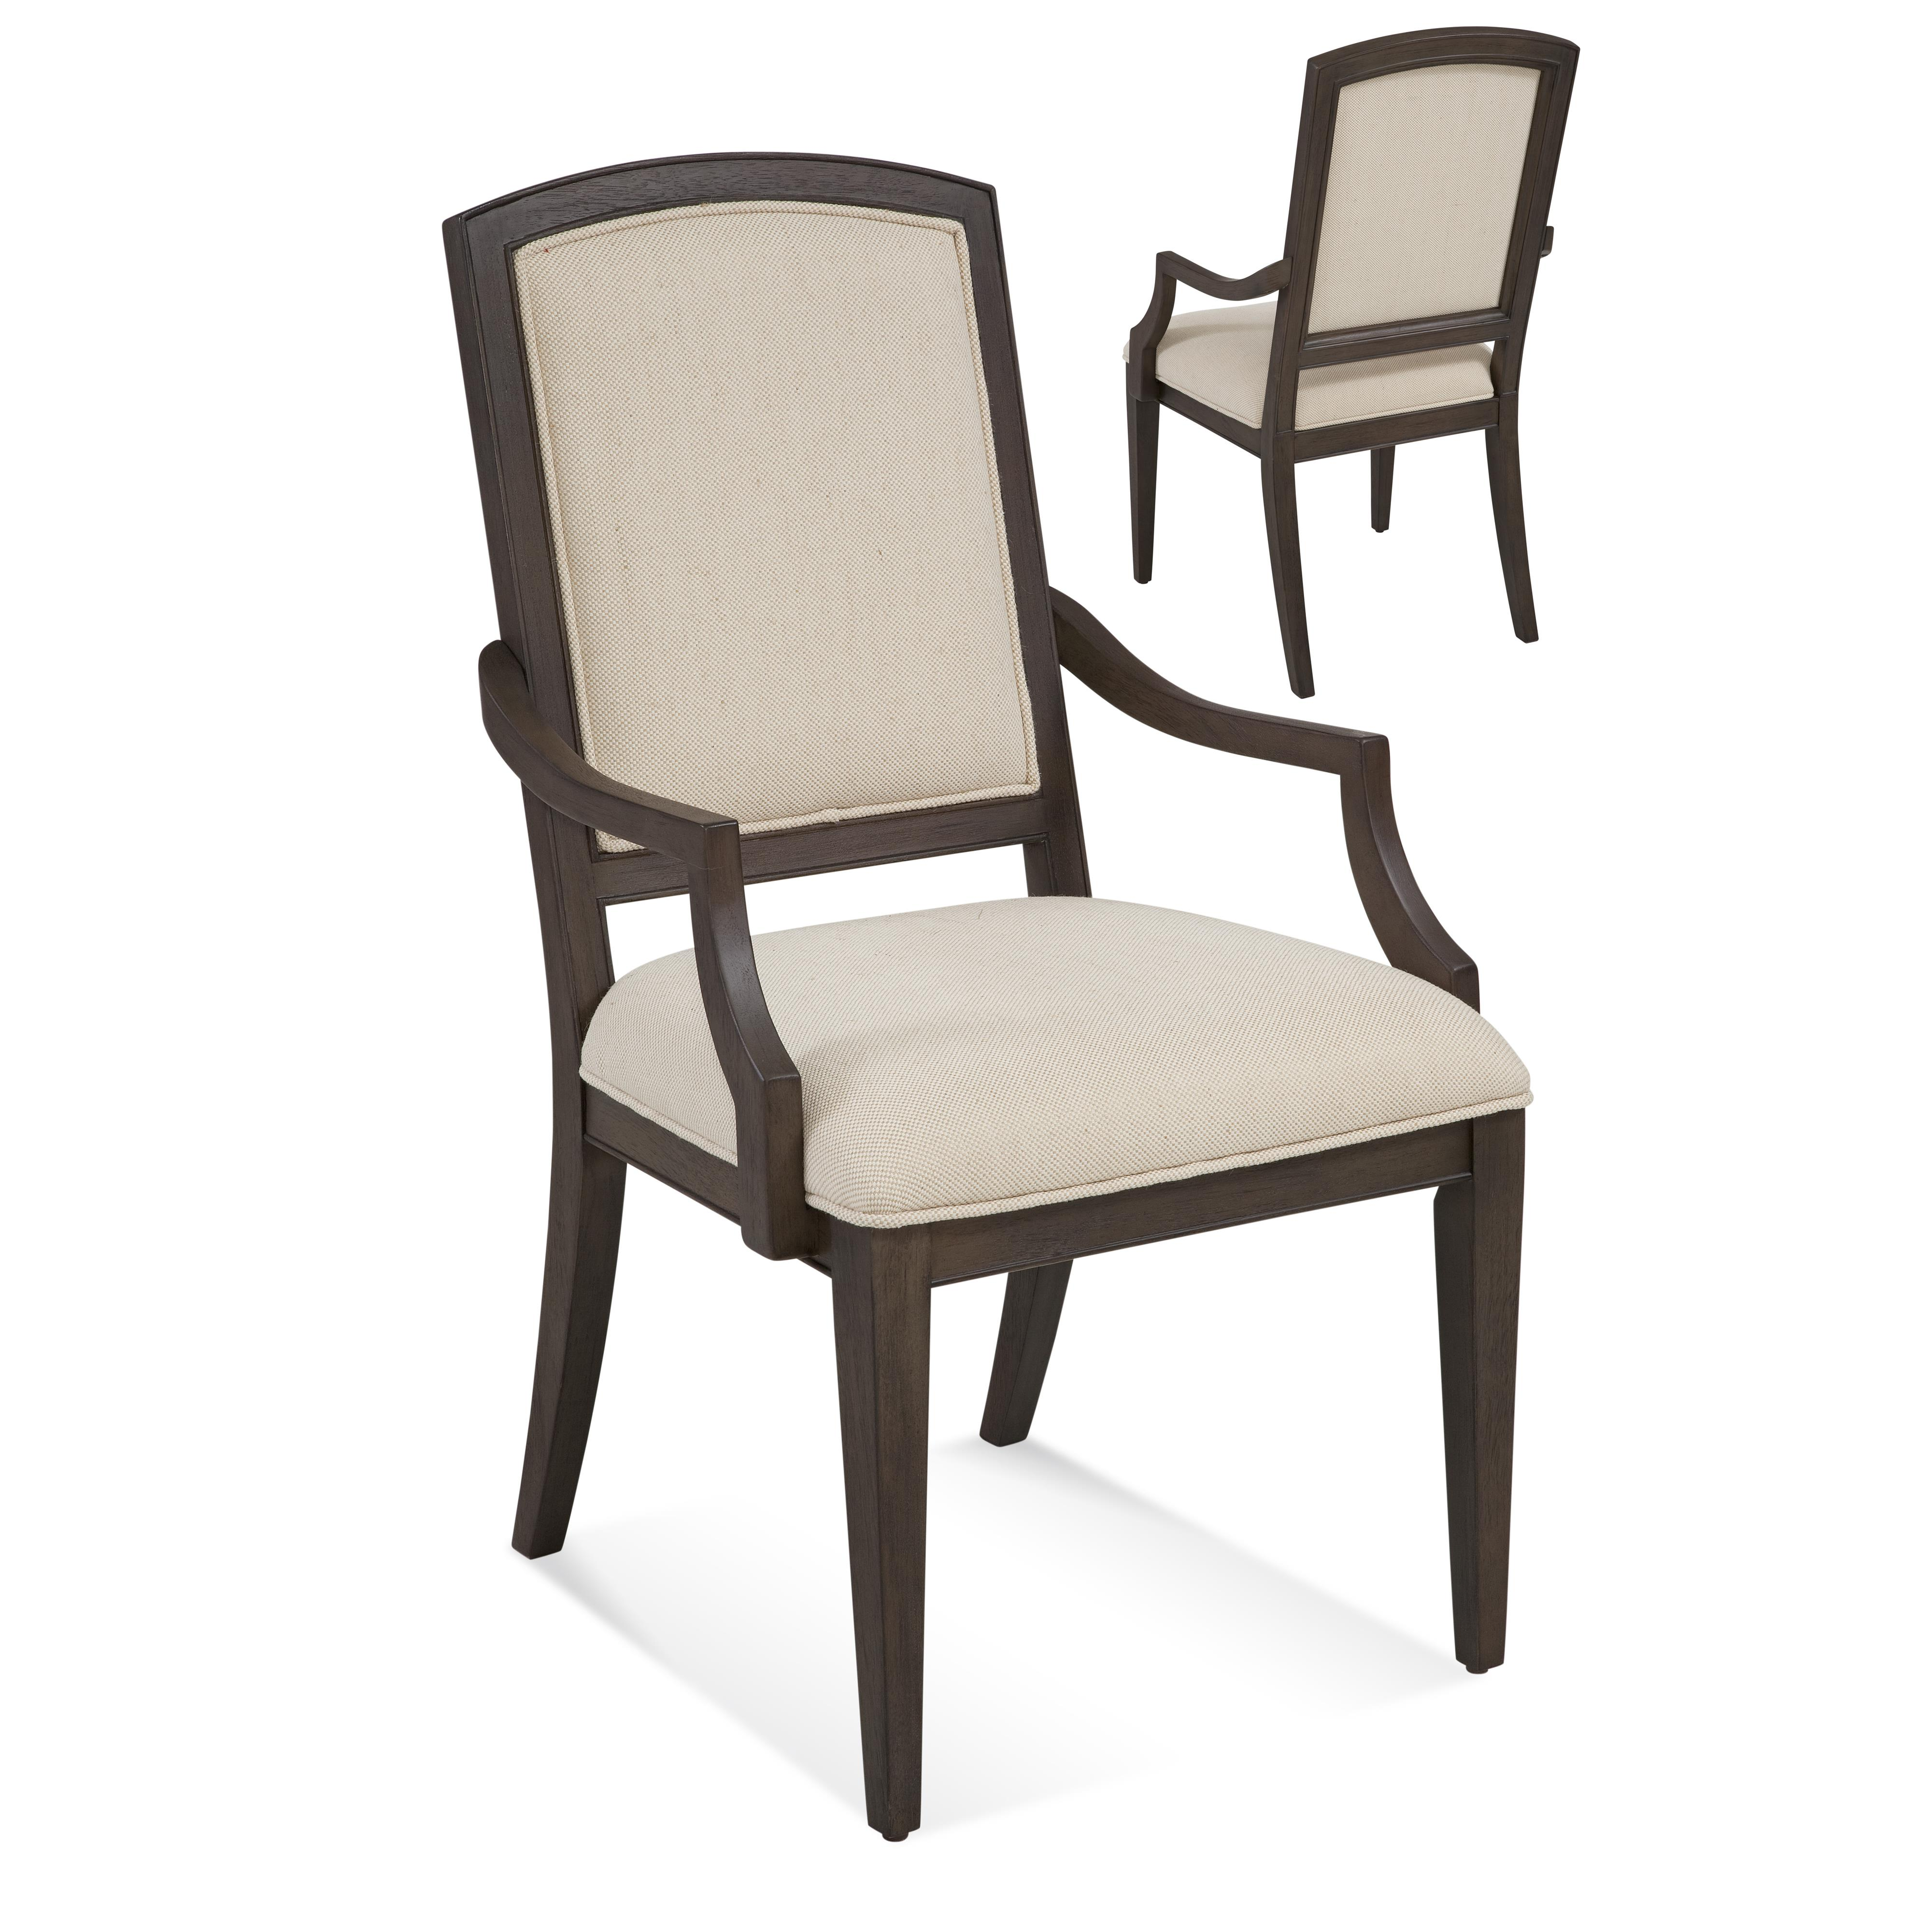 Belgian Luxe Marlette Arm Chair by Bassett Mirror at Alison Craig Home Furnishings